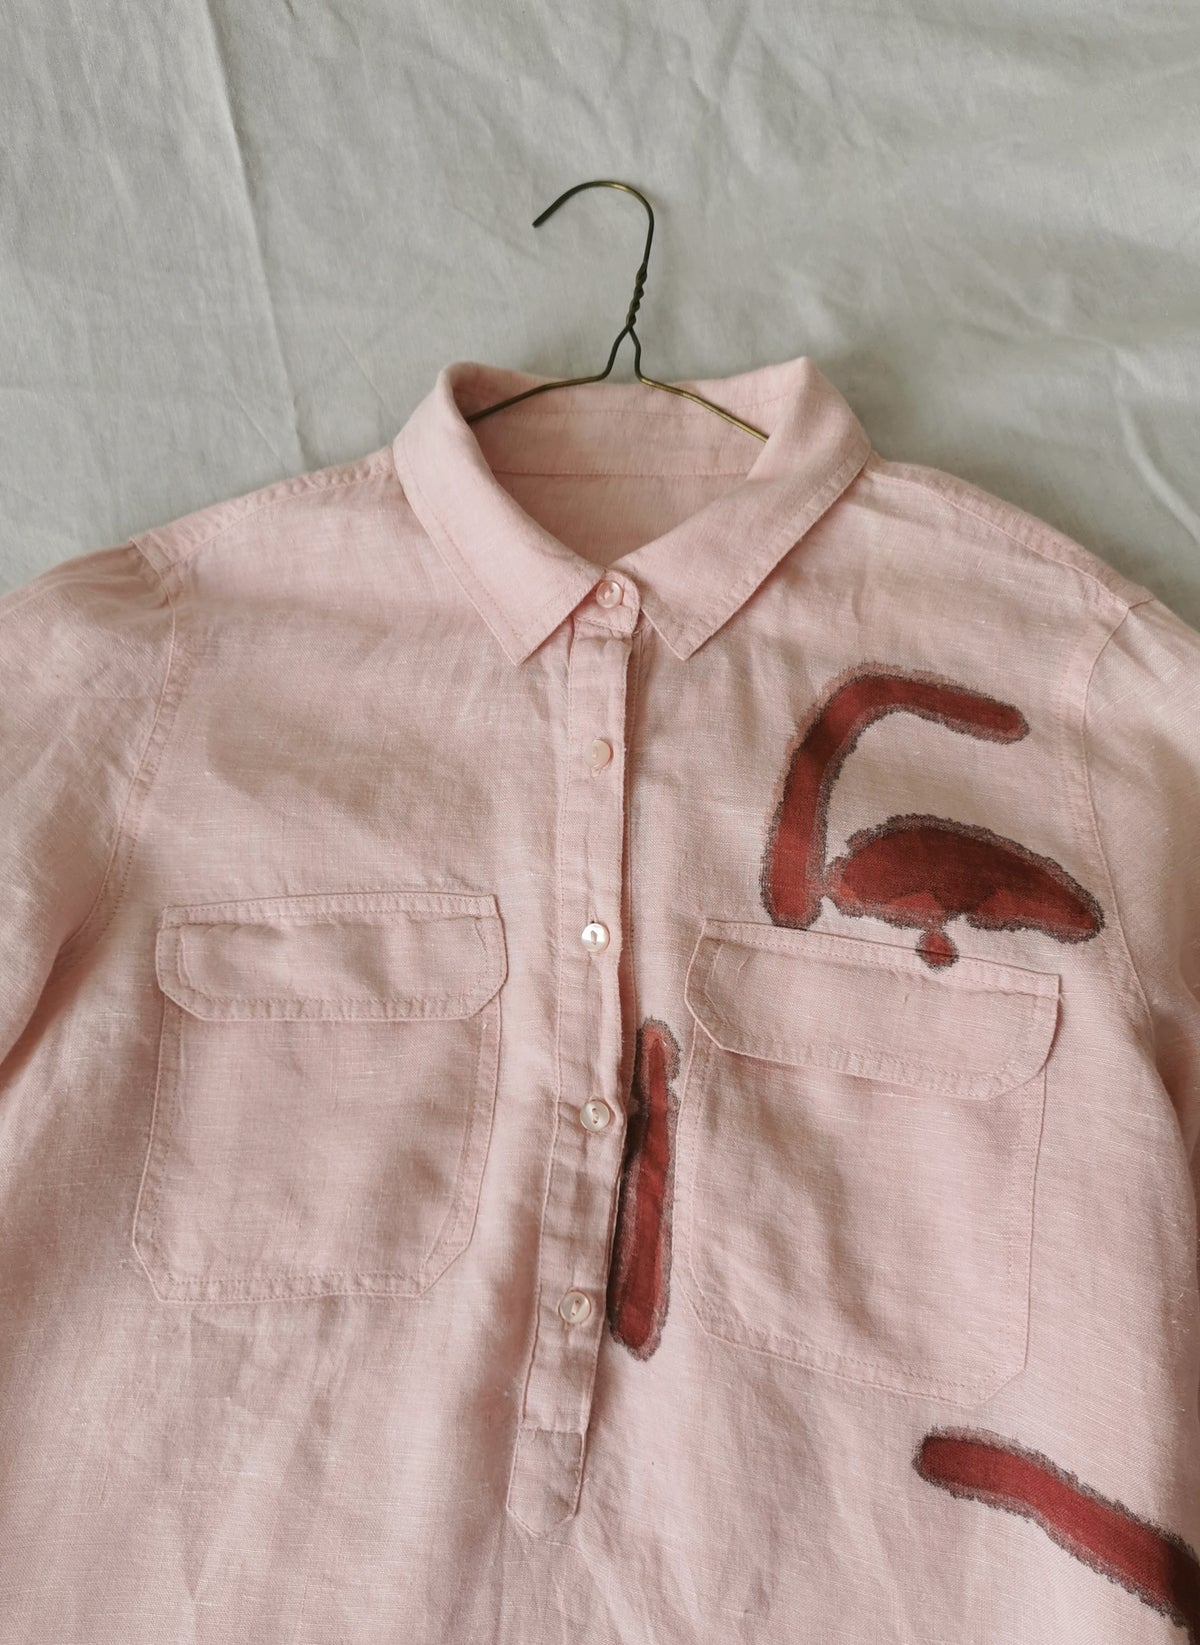 Image of pink up blouse